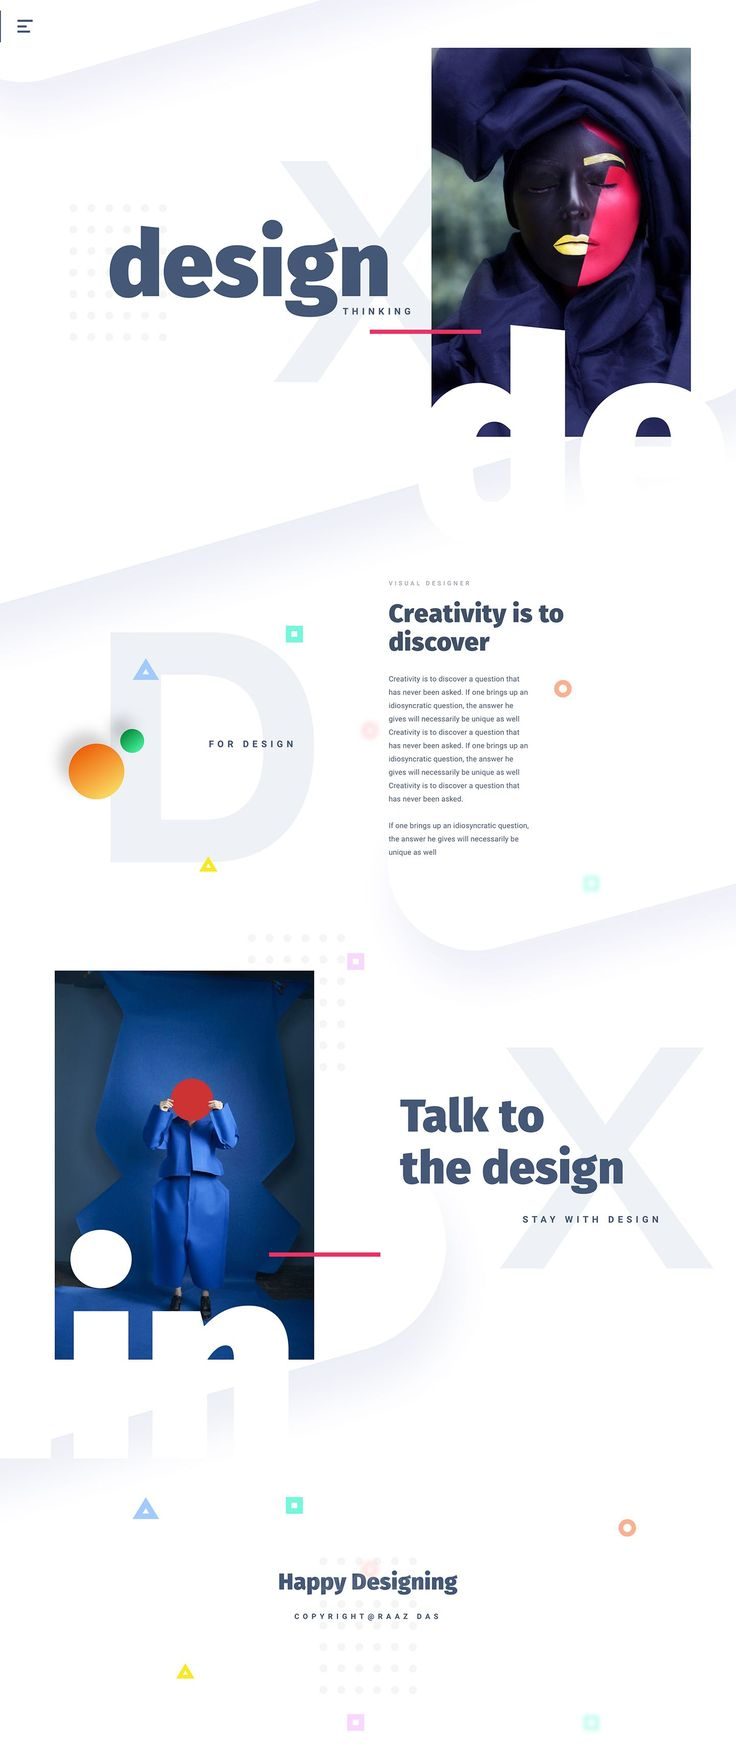 D E S I G N - Creativity is to discover #webdesign #inspiration #landingpage